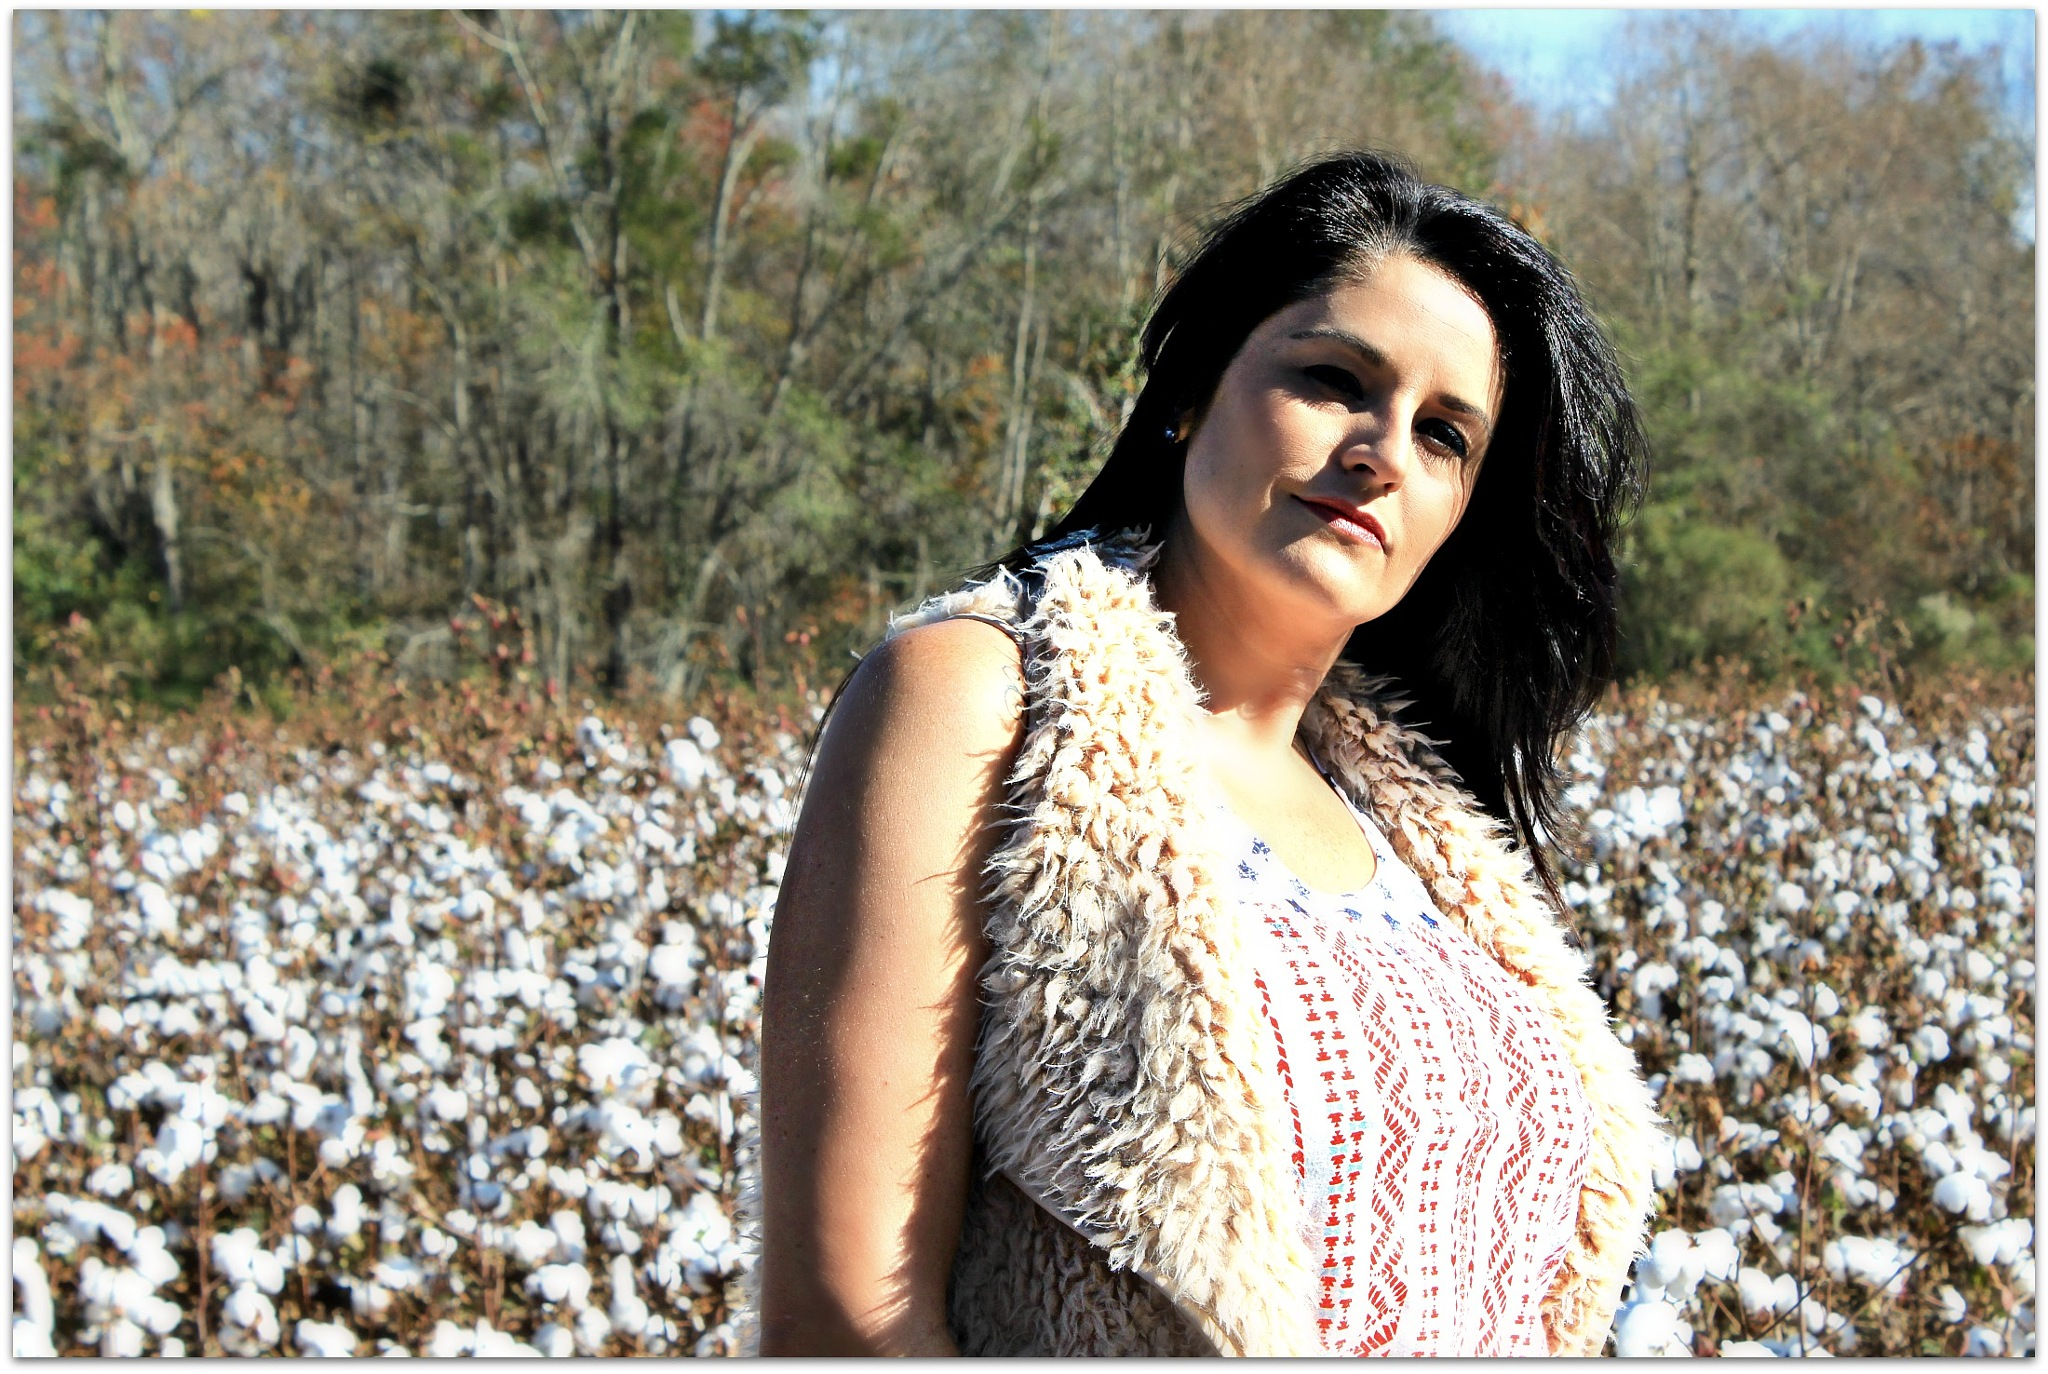 Cotton by Creative Genie Photography